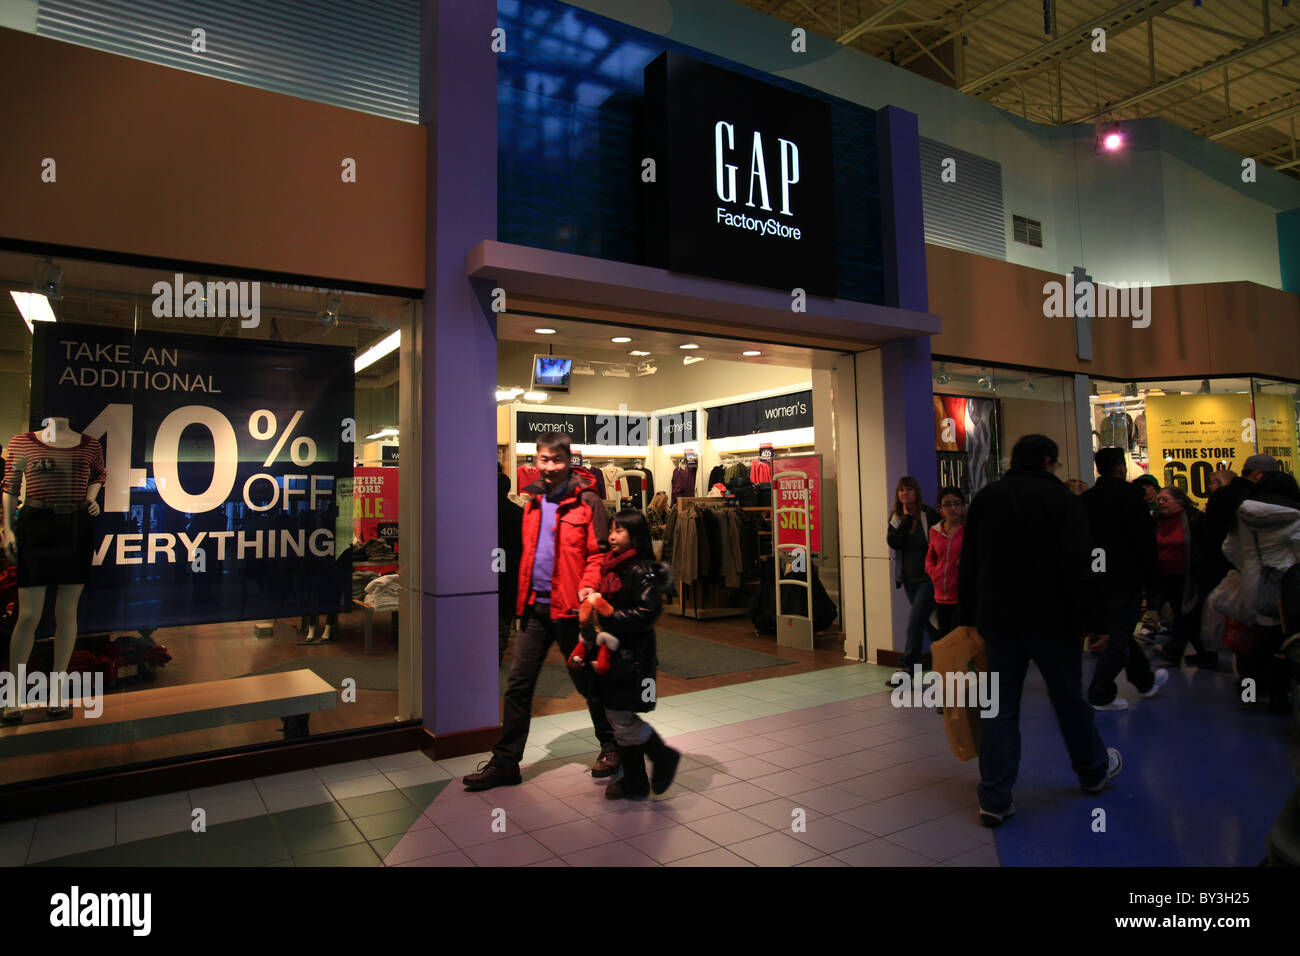 988d9612e74c9 Outside GAP outlet store in Vaughan Mills Mall in Toronto, 2010 ...